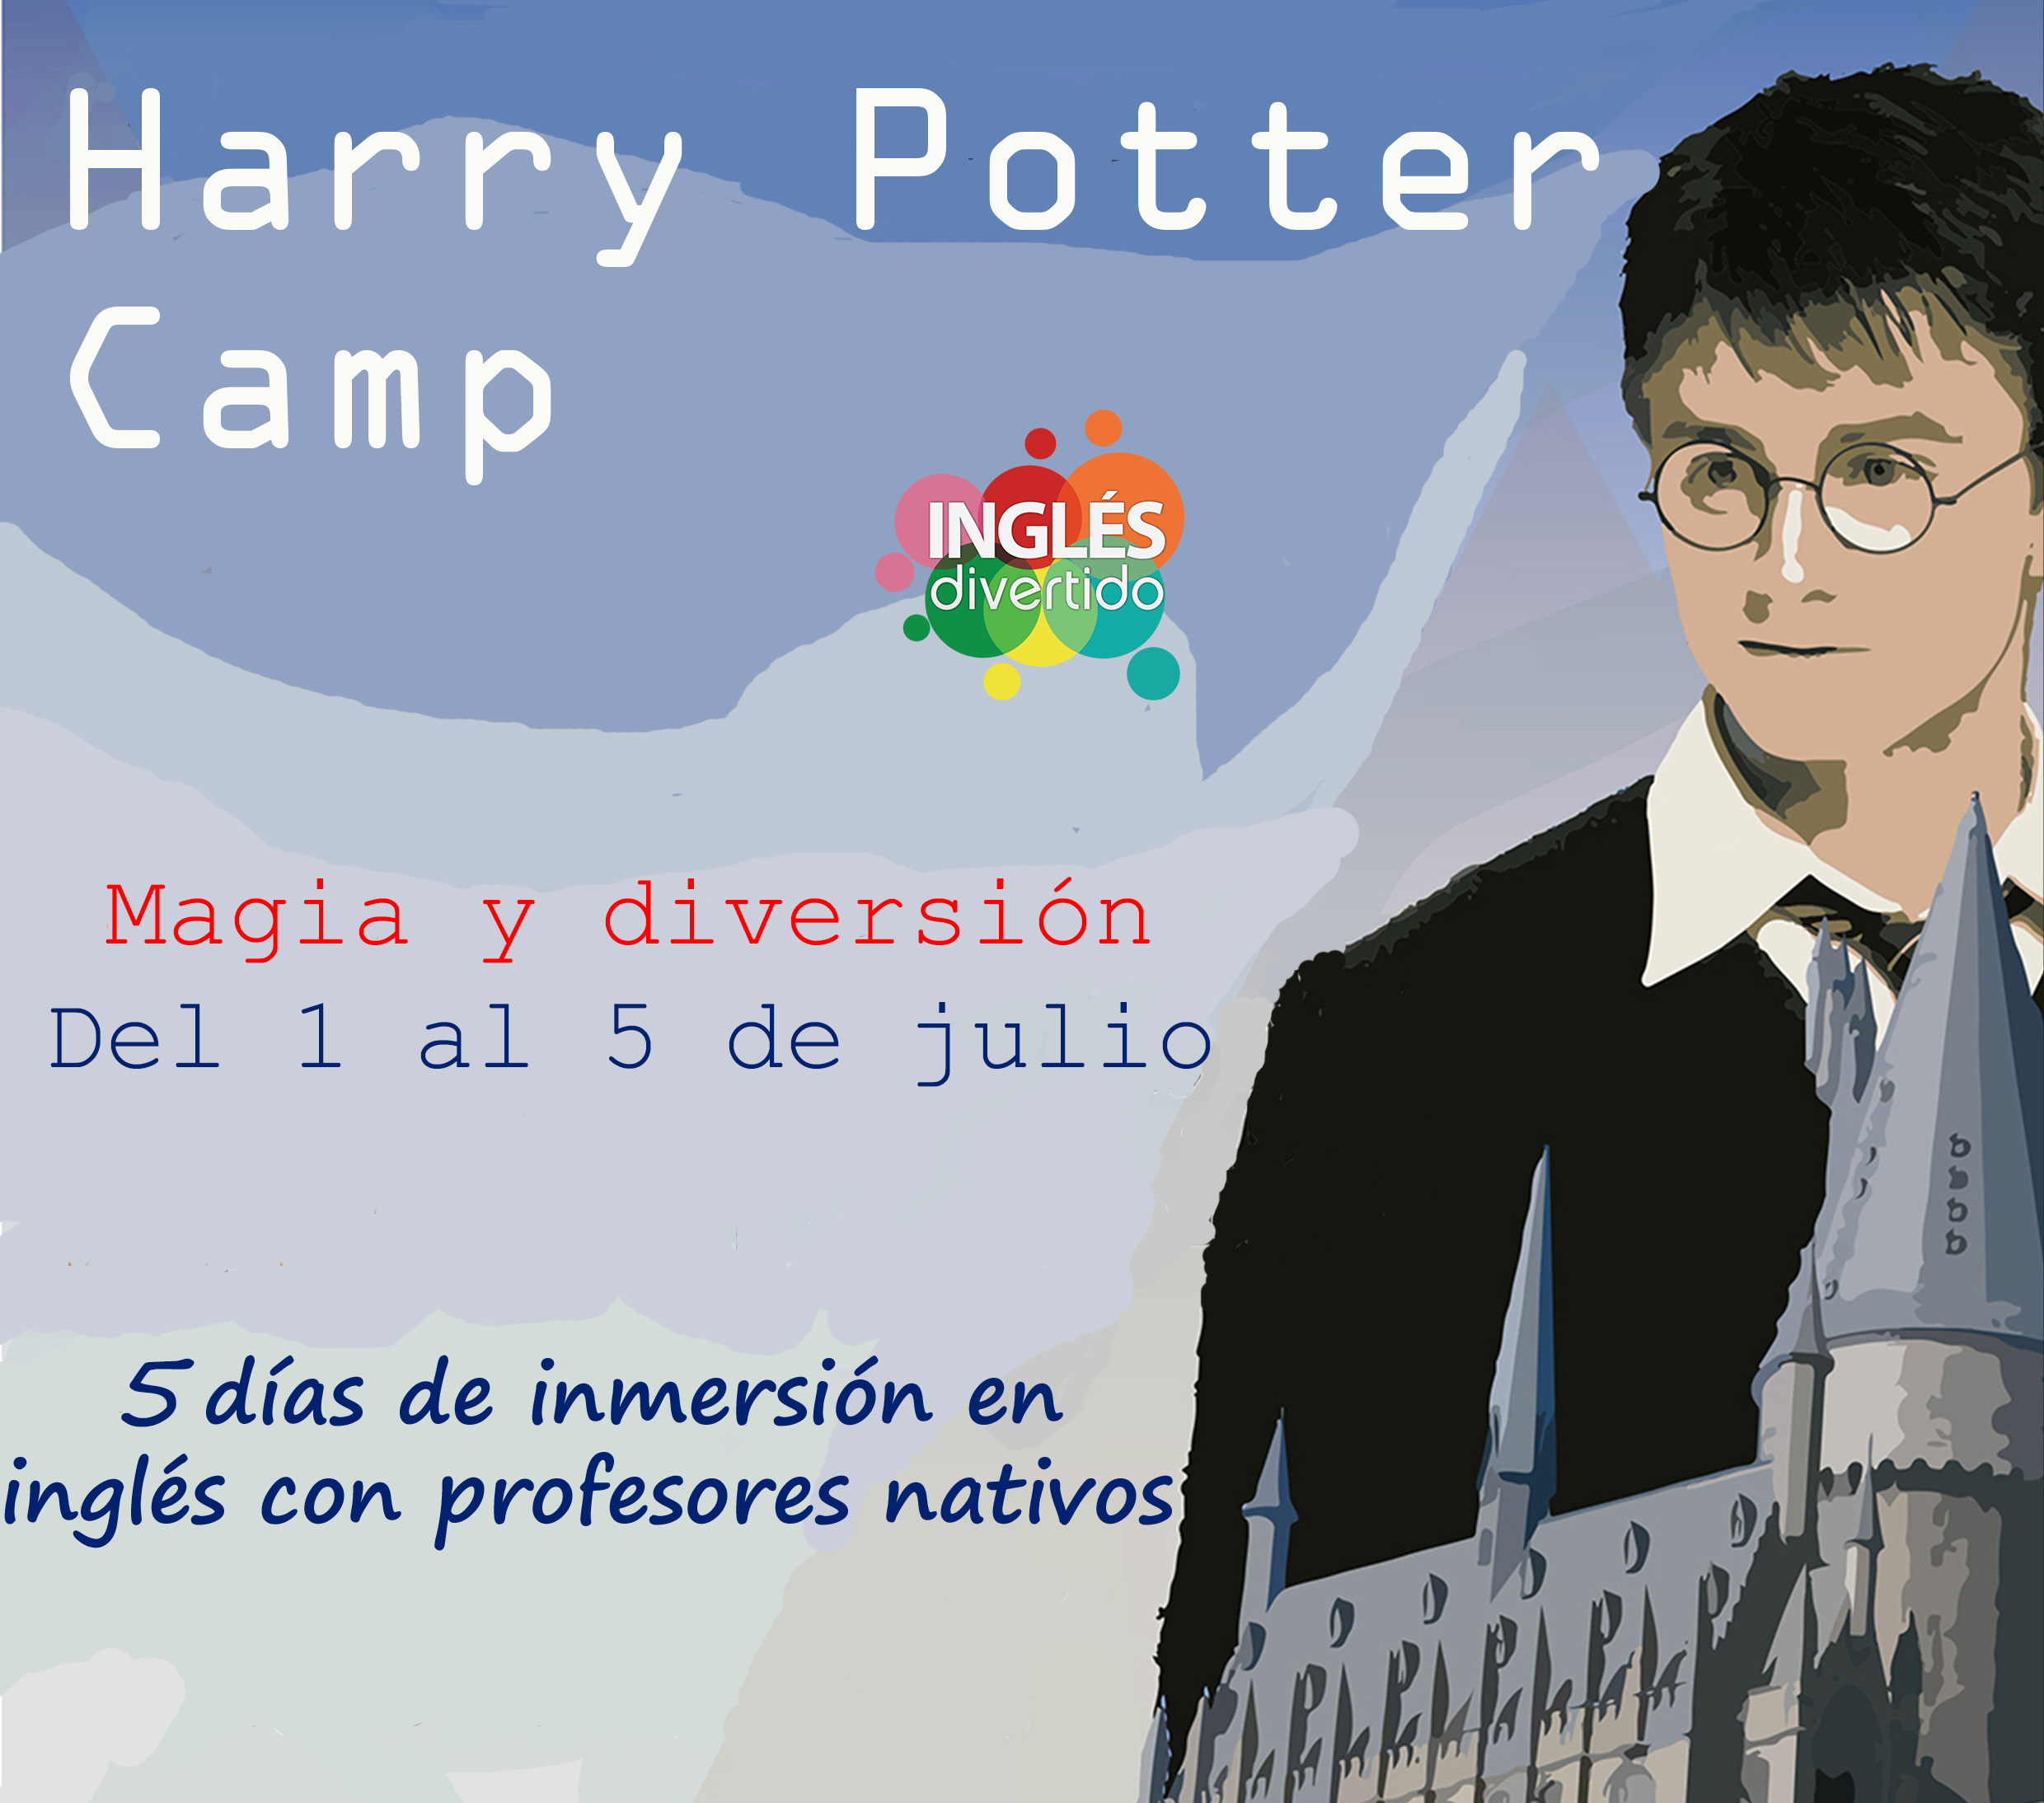 Harry Potter Camp